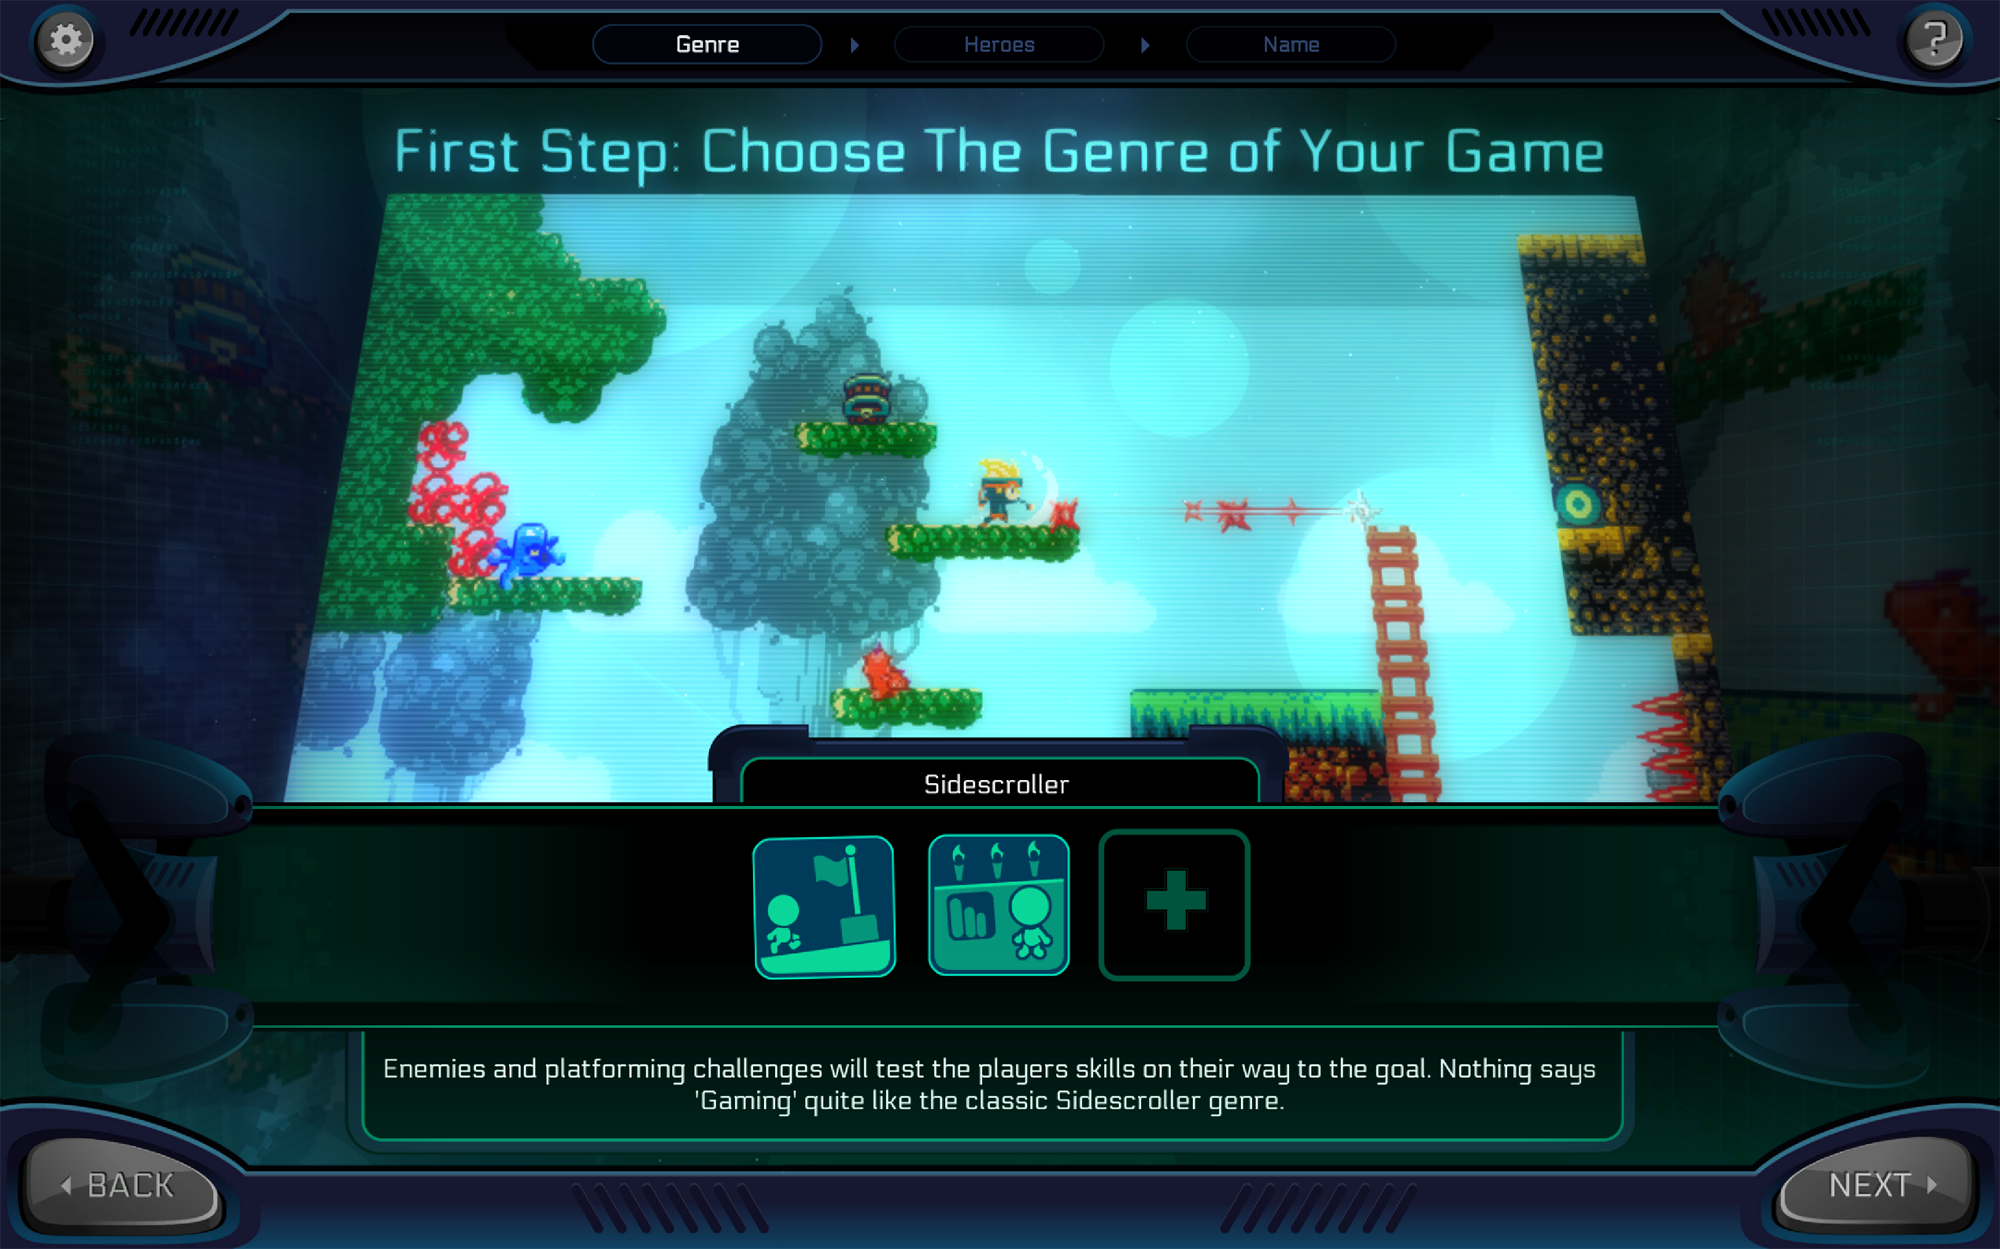 vgm_chooseyourgenre_02.png